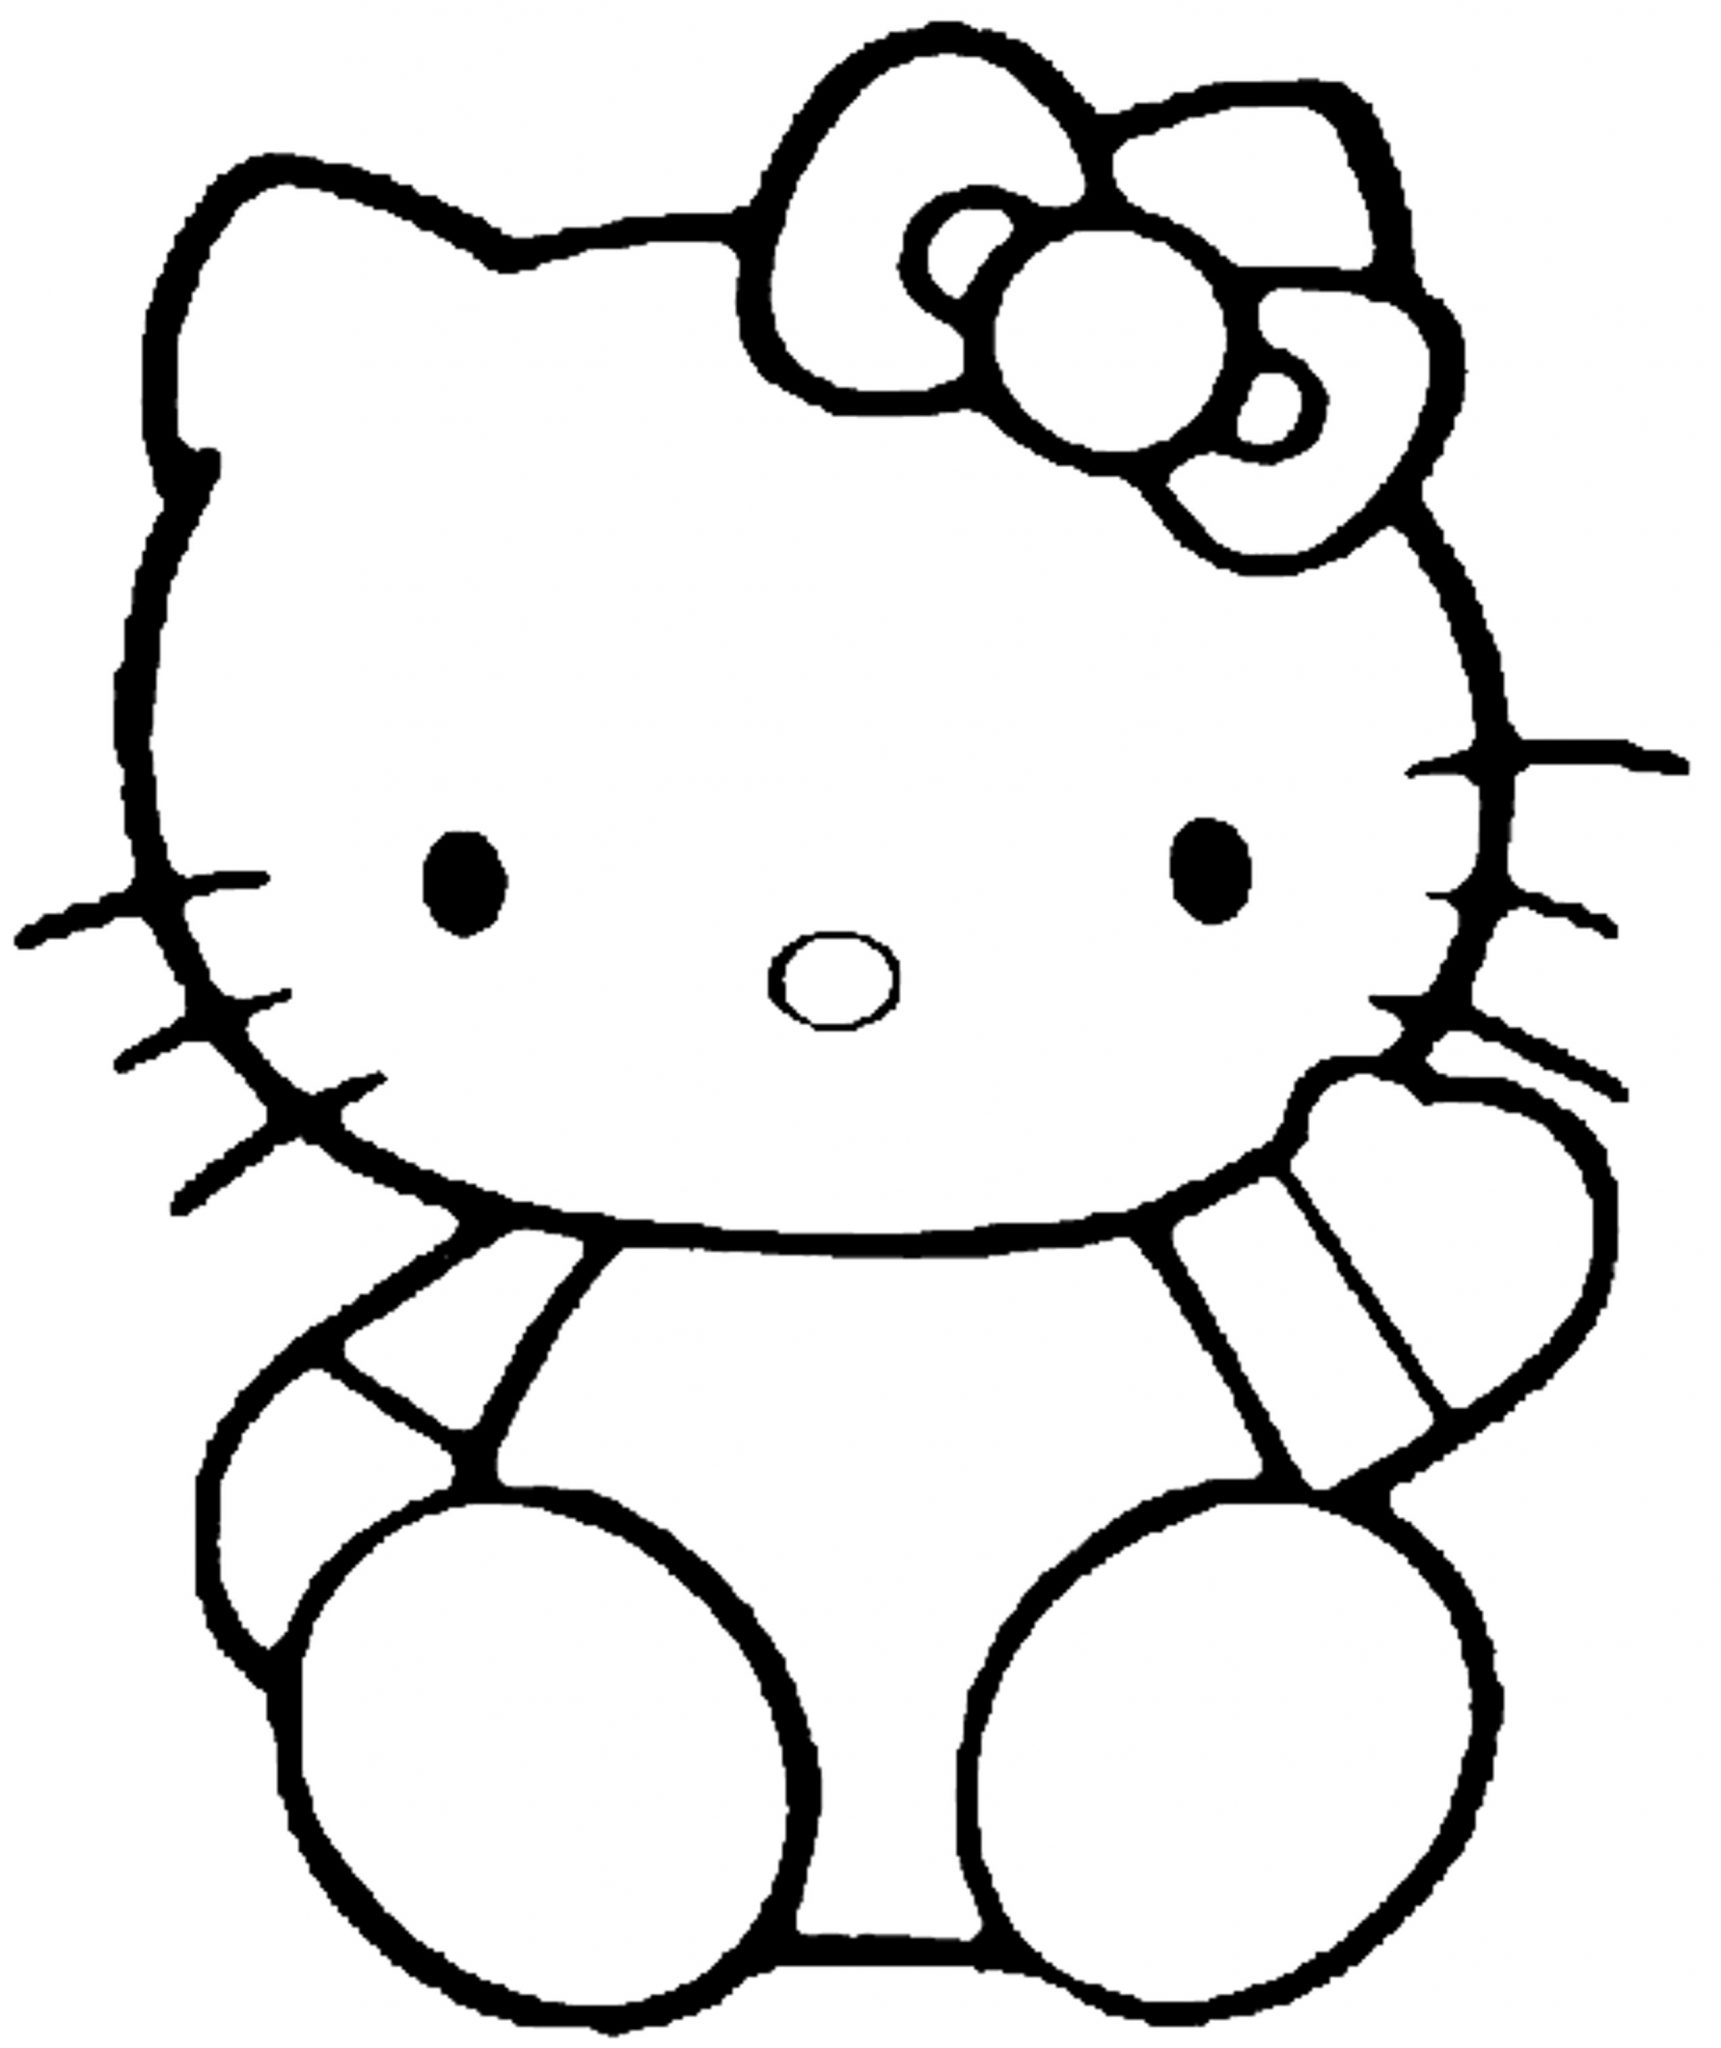 Print & Download - Coloring Pages for Girls, Recommend a Hobby To A ...